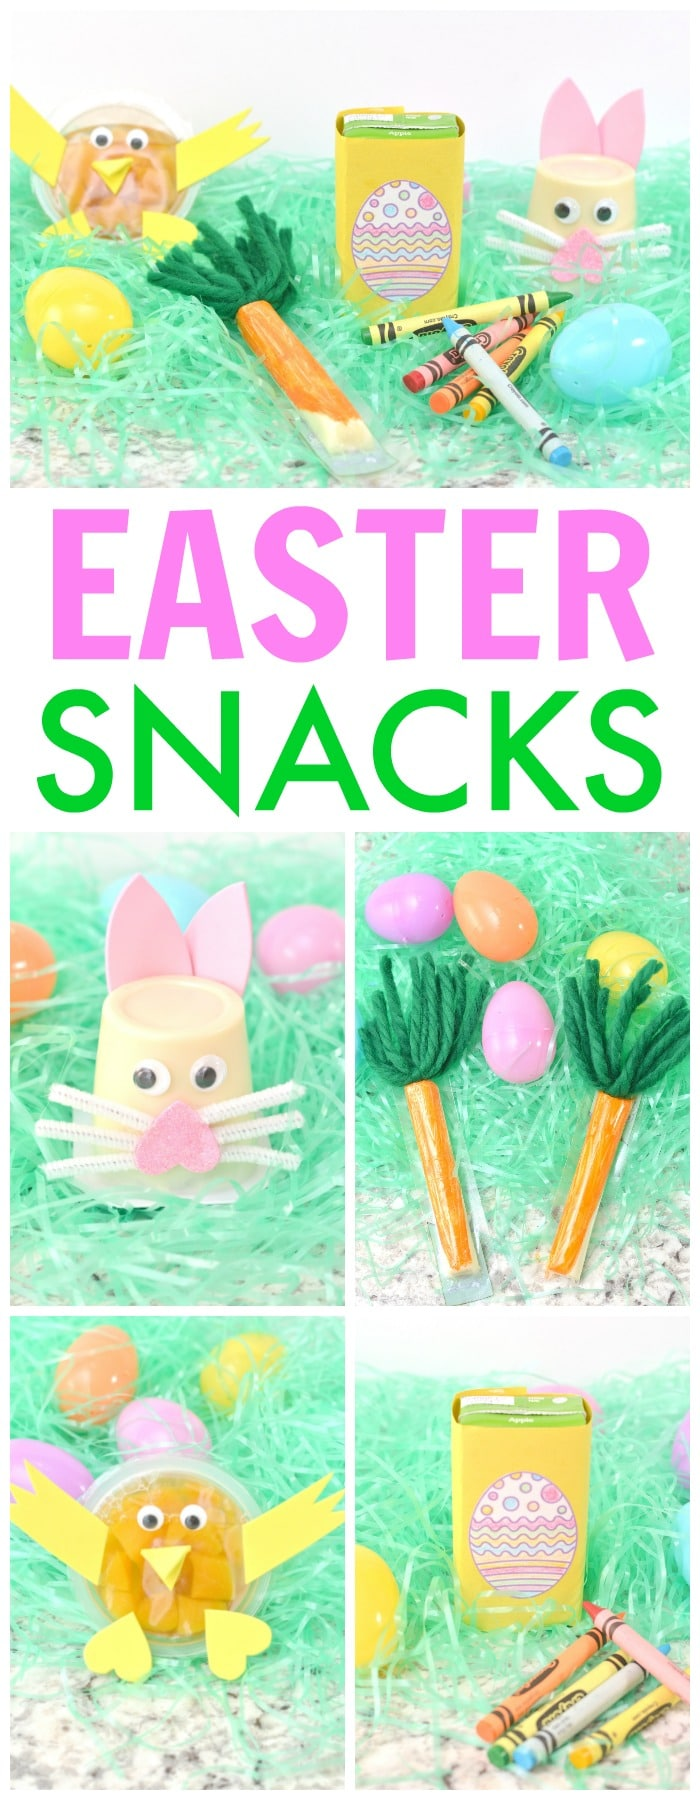 These Easter snack crafts are absolutely adorable and incredibly easy to make! #easter #funfoodforkids #easycrafts via @wondermomwannab